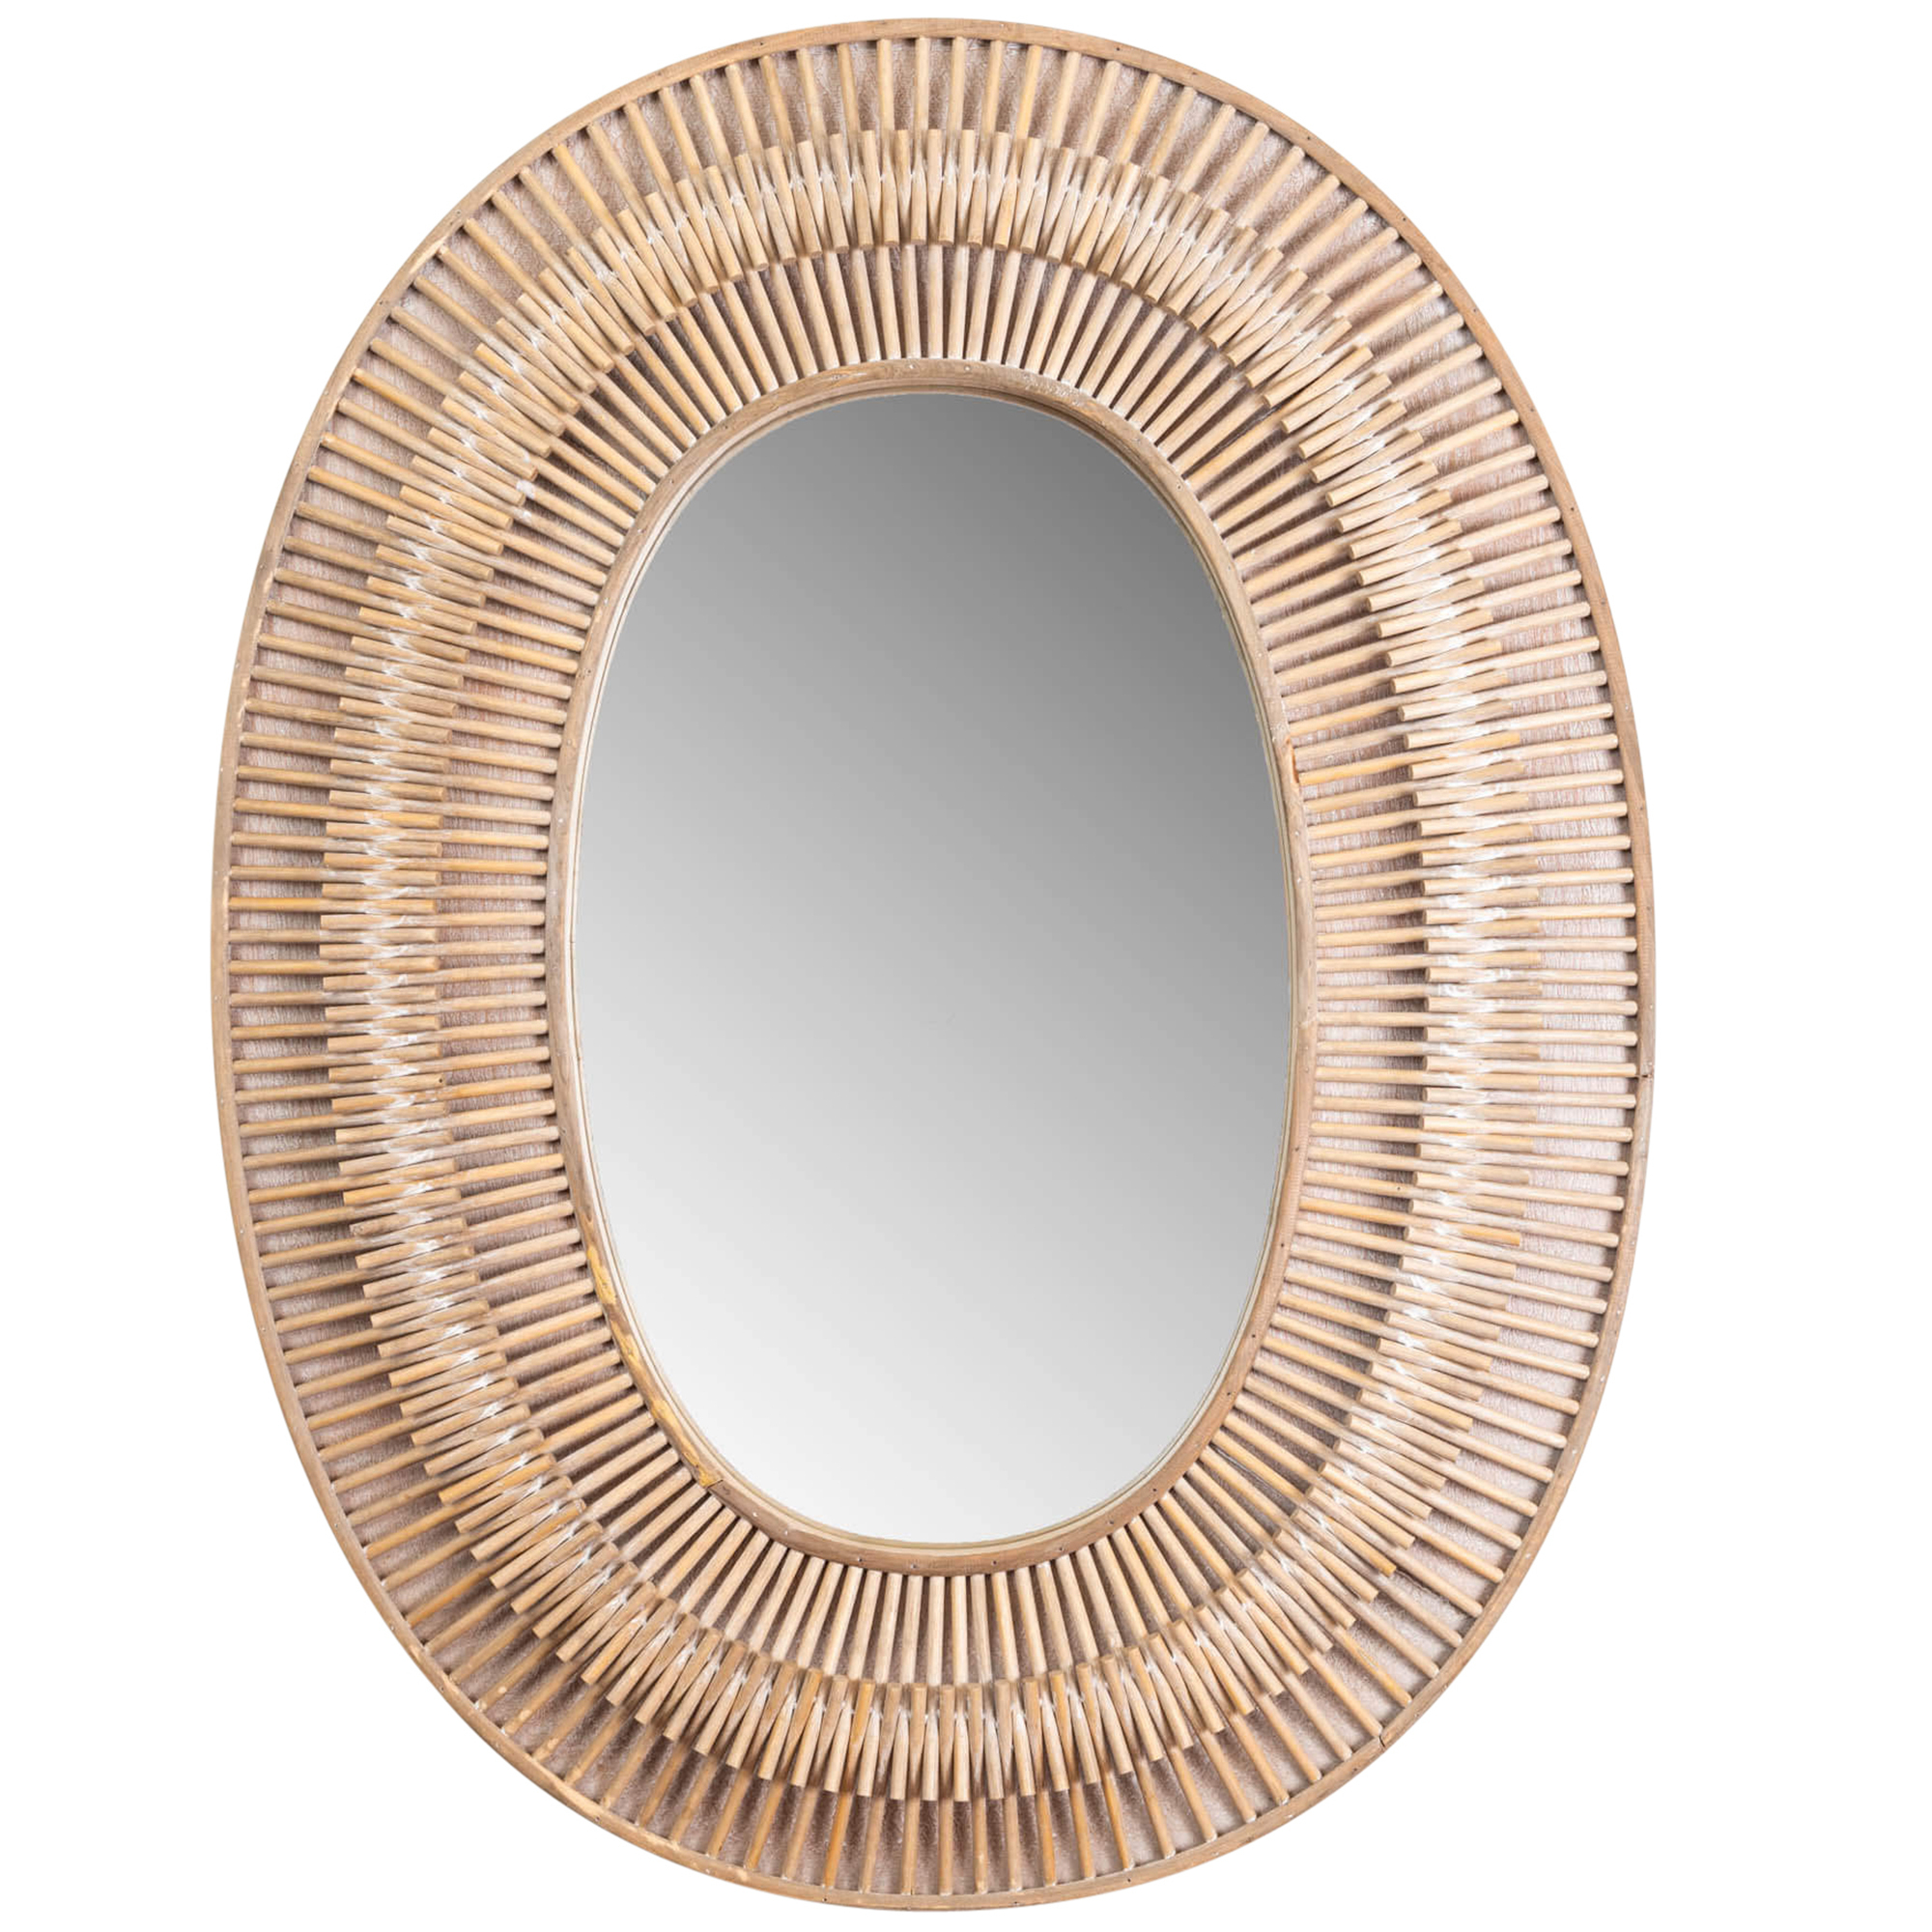 Details About New Natural Silas Oval Rattan Wall Mirror – Sunday Homewares,mirrors Inside Famous Rattan Wall Mirrors (View 17 of 20)